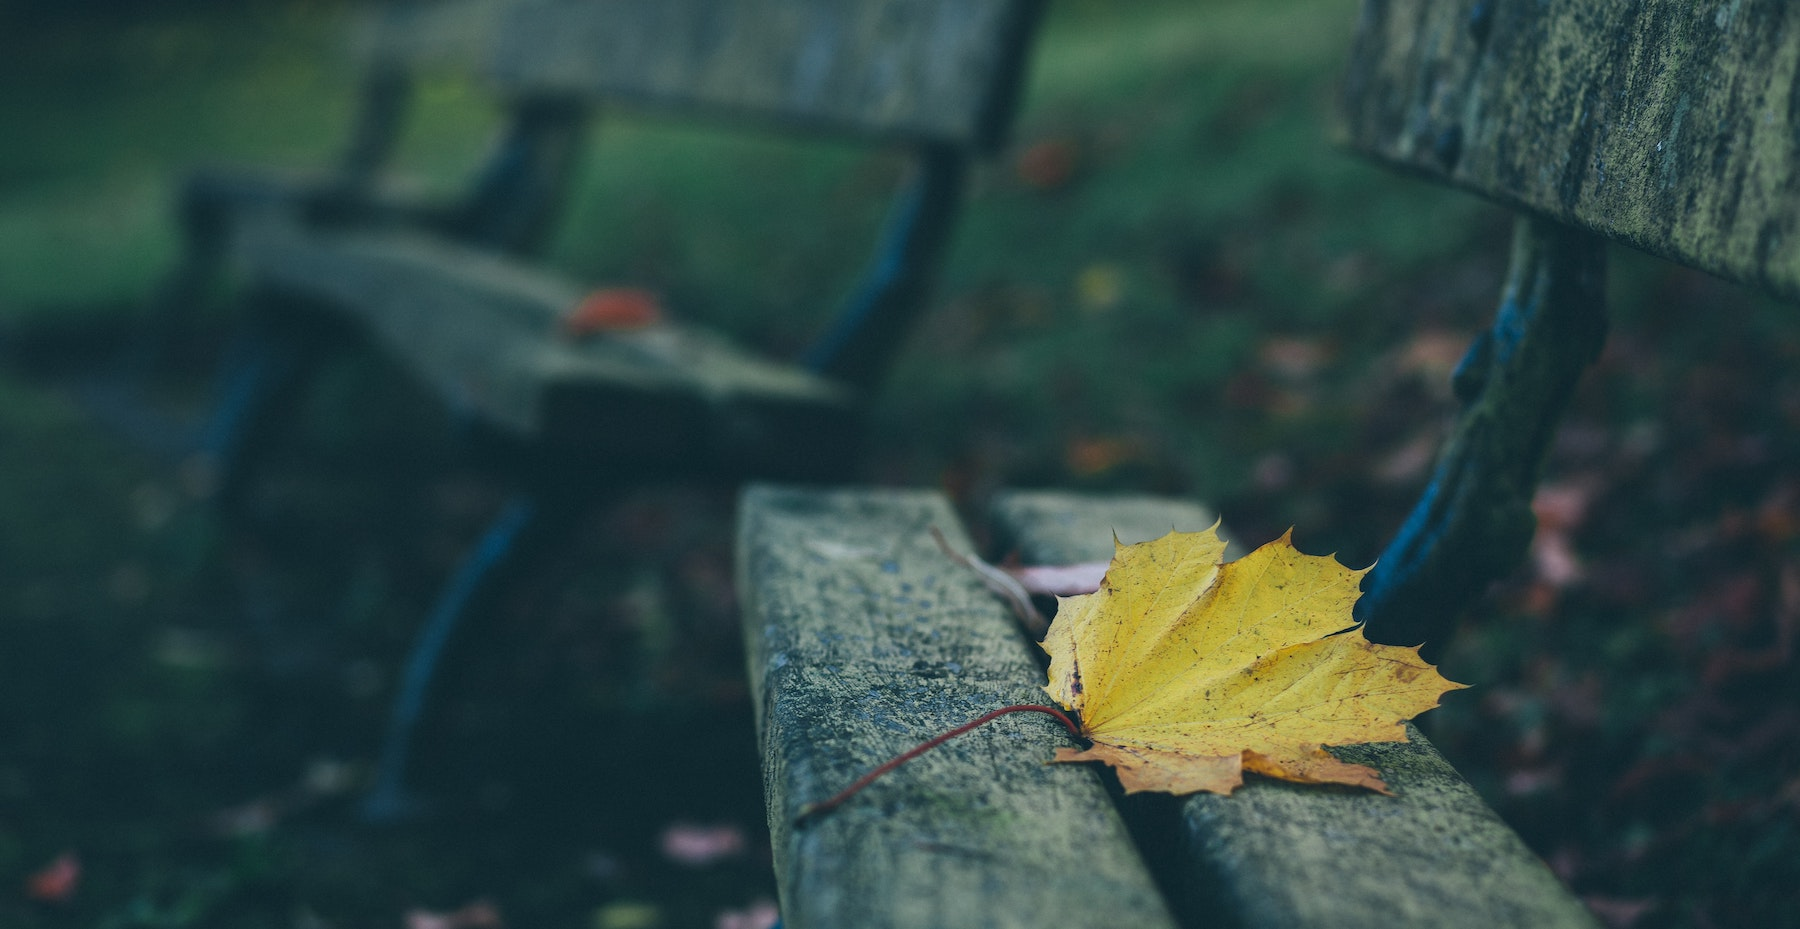 memorial bench with a yellow leaf on it